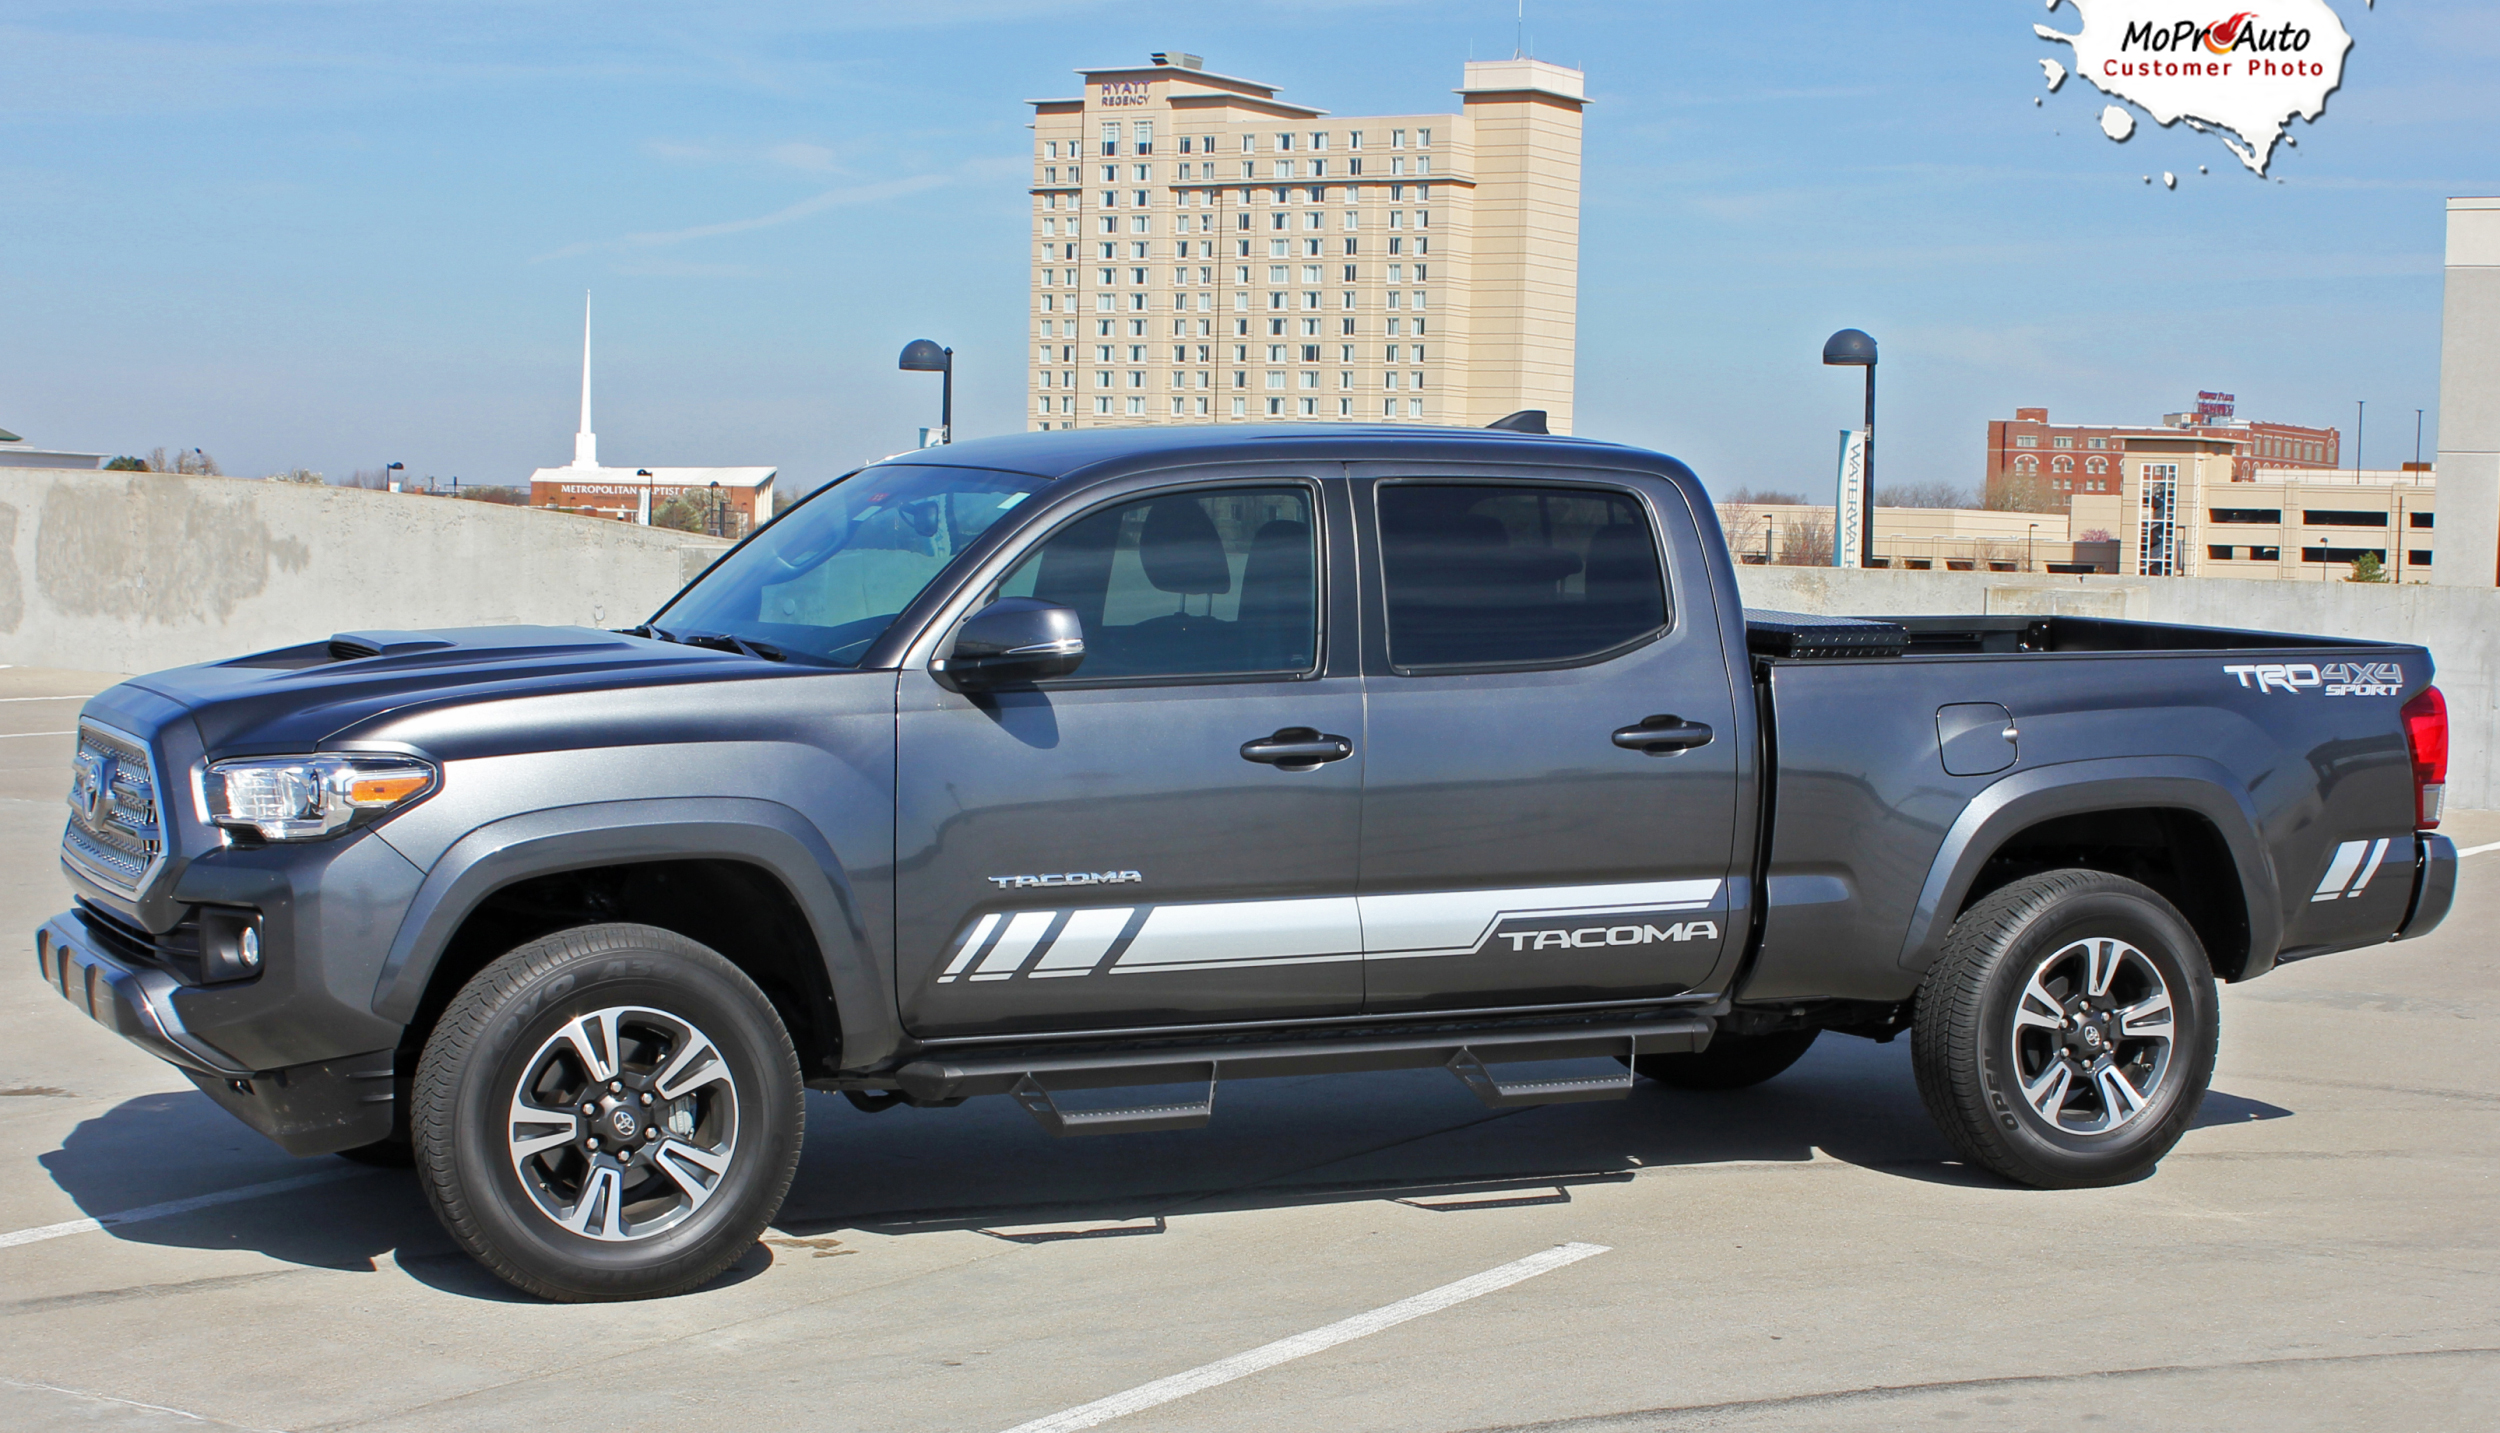 CORE - Toyota Tacoma Truck TRD Sport Pro 3M 1080 Vinyl Graphics, Stripes and Decals Package by MoProAuto Pro Design Series